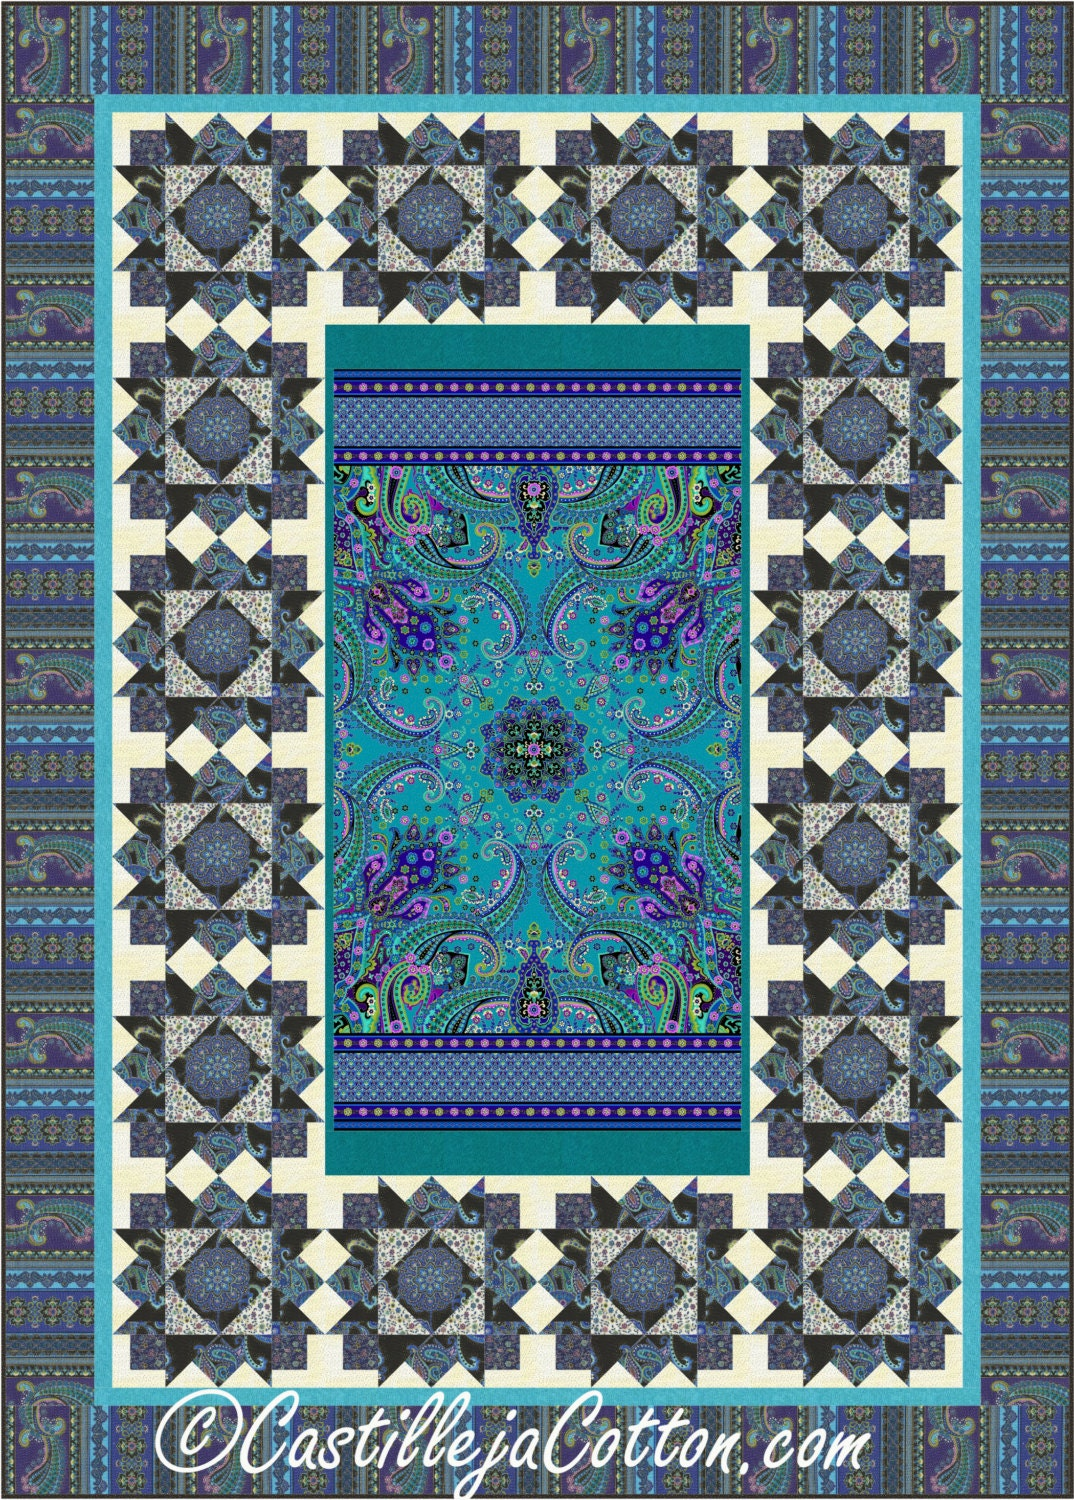 Twin Quilt Patterns Free : Mystique Twin Quilt ePattern 4814-1 Twin quilt pattern